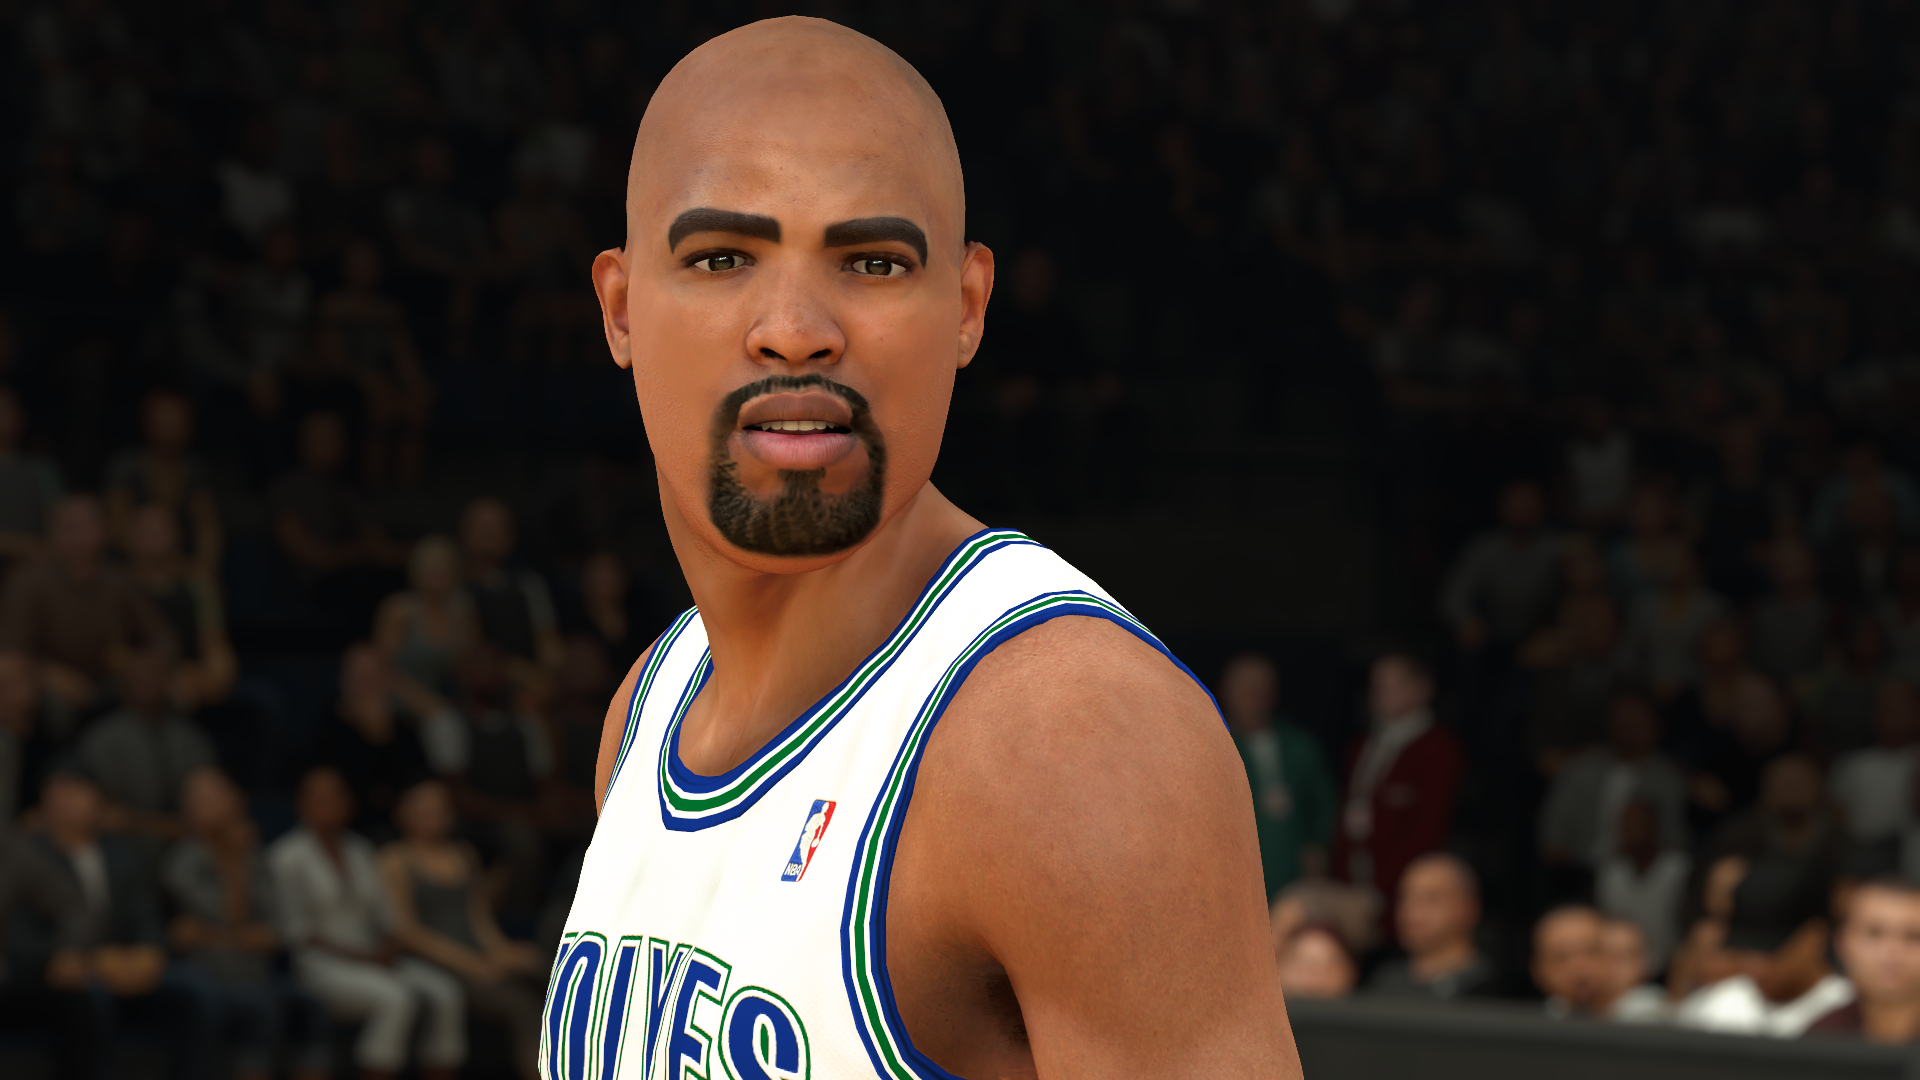 11 Classic Player Cyberface Pack for 91-92 Roster